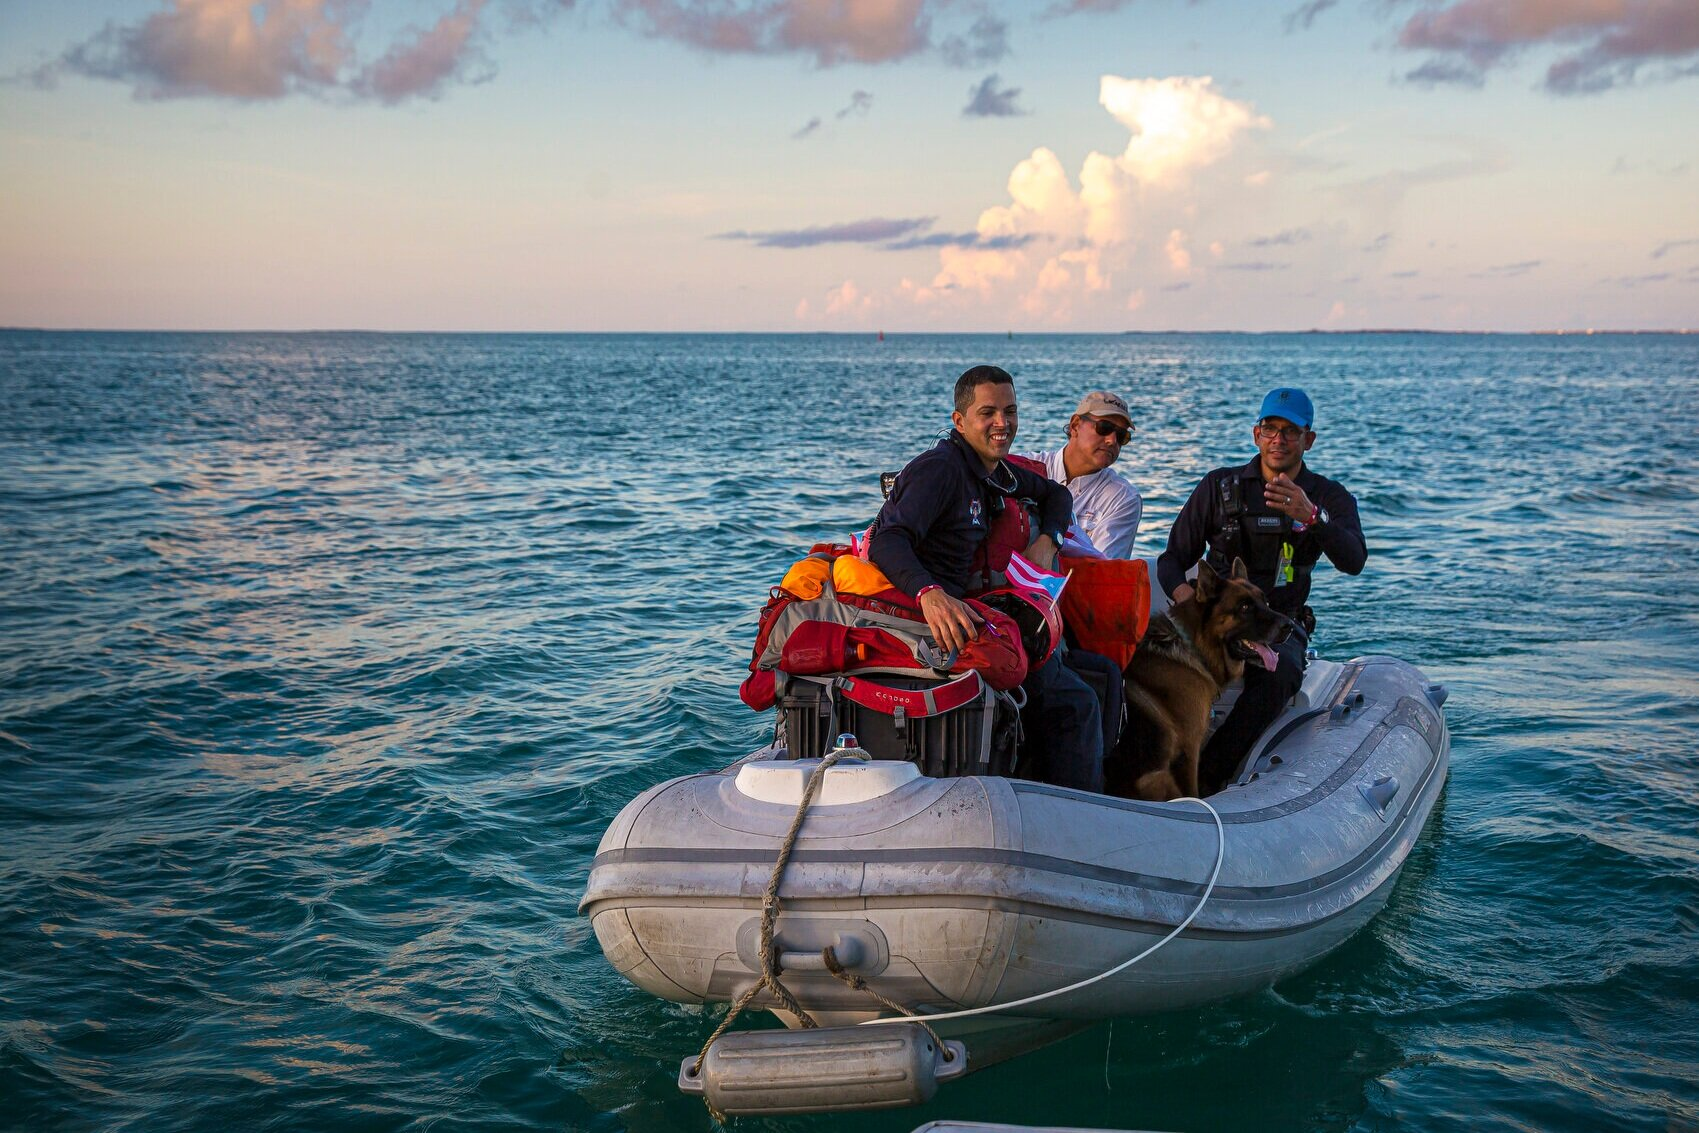 Search + Rescue - In partnership with the Municipality of San Juan, CORE deployed a search and rescue team seasoned from their first-hand experience responding to Hurricane Maria in Puerto Rico.